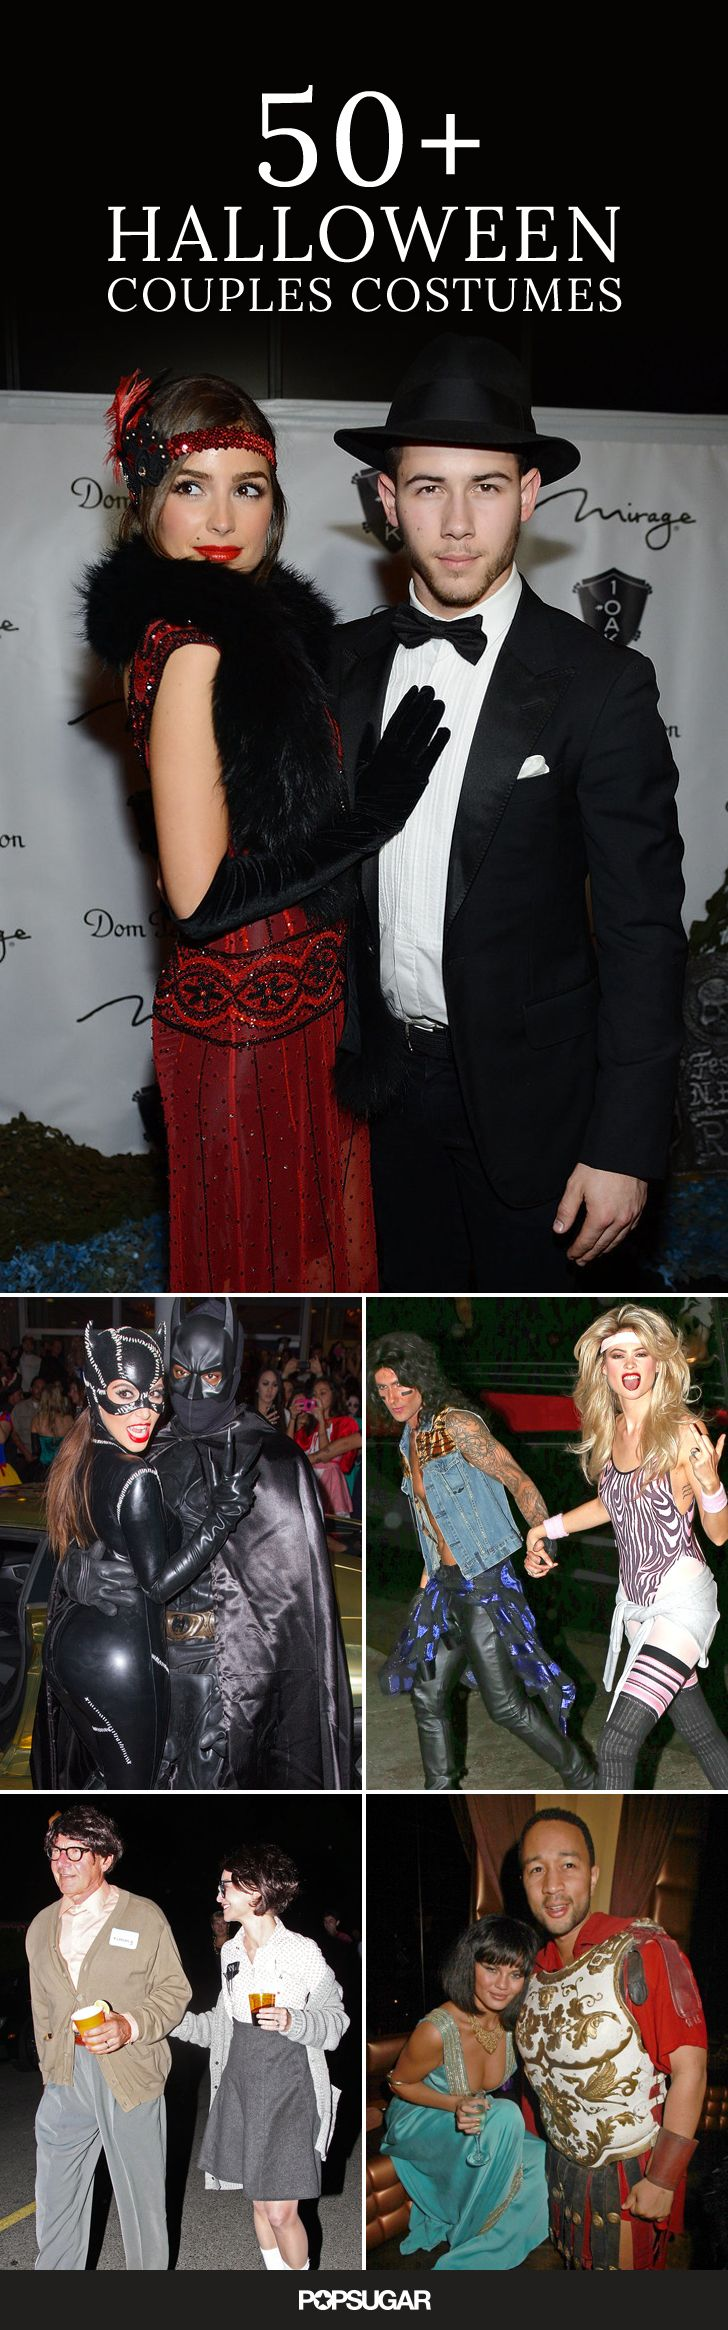 There have been a lot of impressive Halloween costumes over the years, but only a handful of celebrity couples make it out in coordinated looks. Get inspiration and ideas with a look back at some of the best celebrity couples costumes!